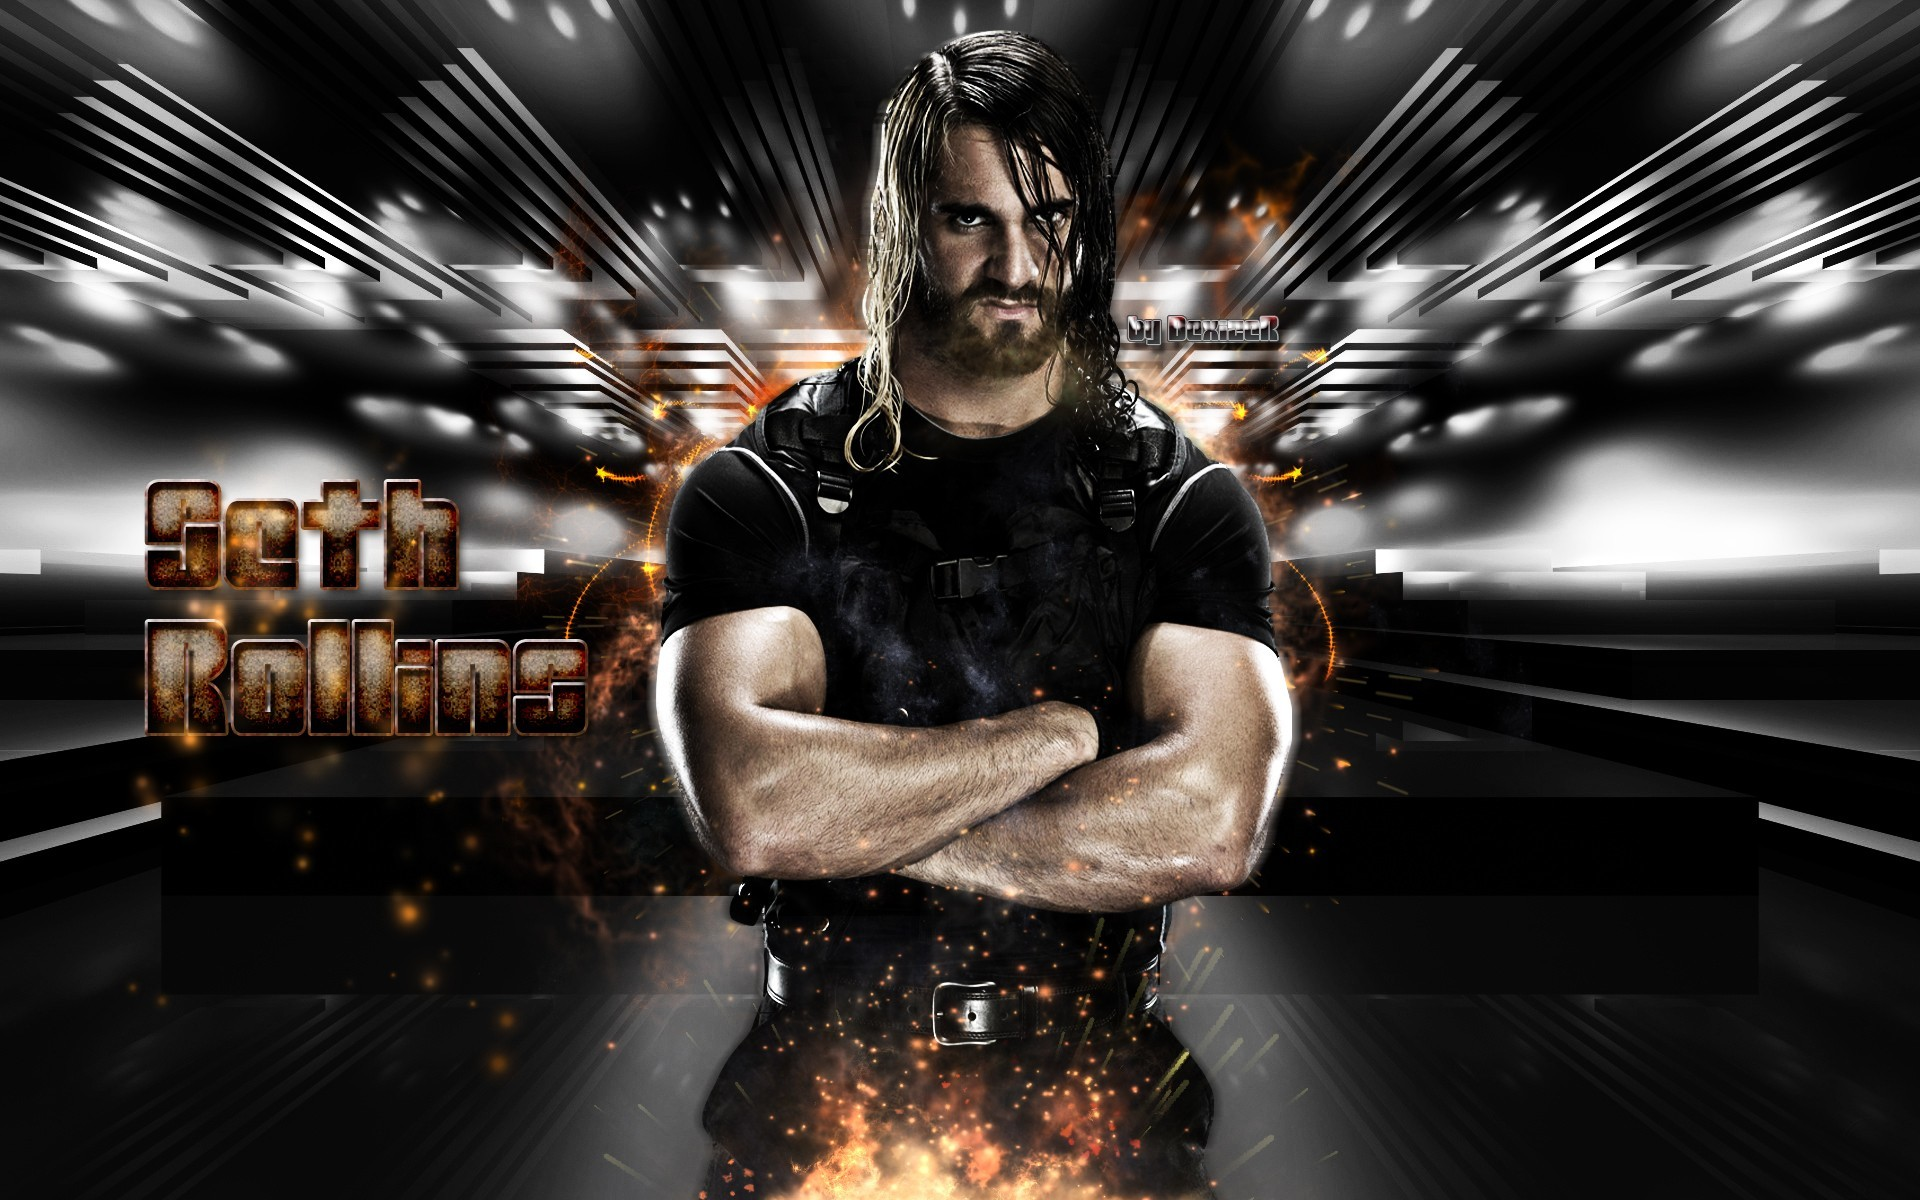 WWE Superstar Seth Rollins Wallpapers – New HD Wallpapers